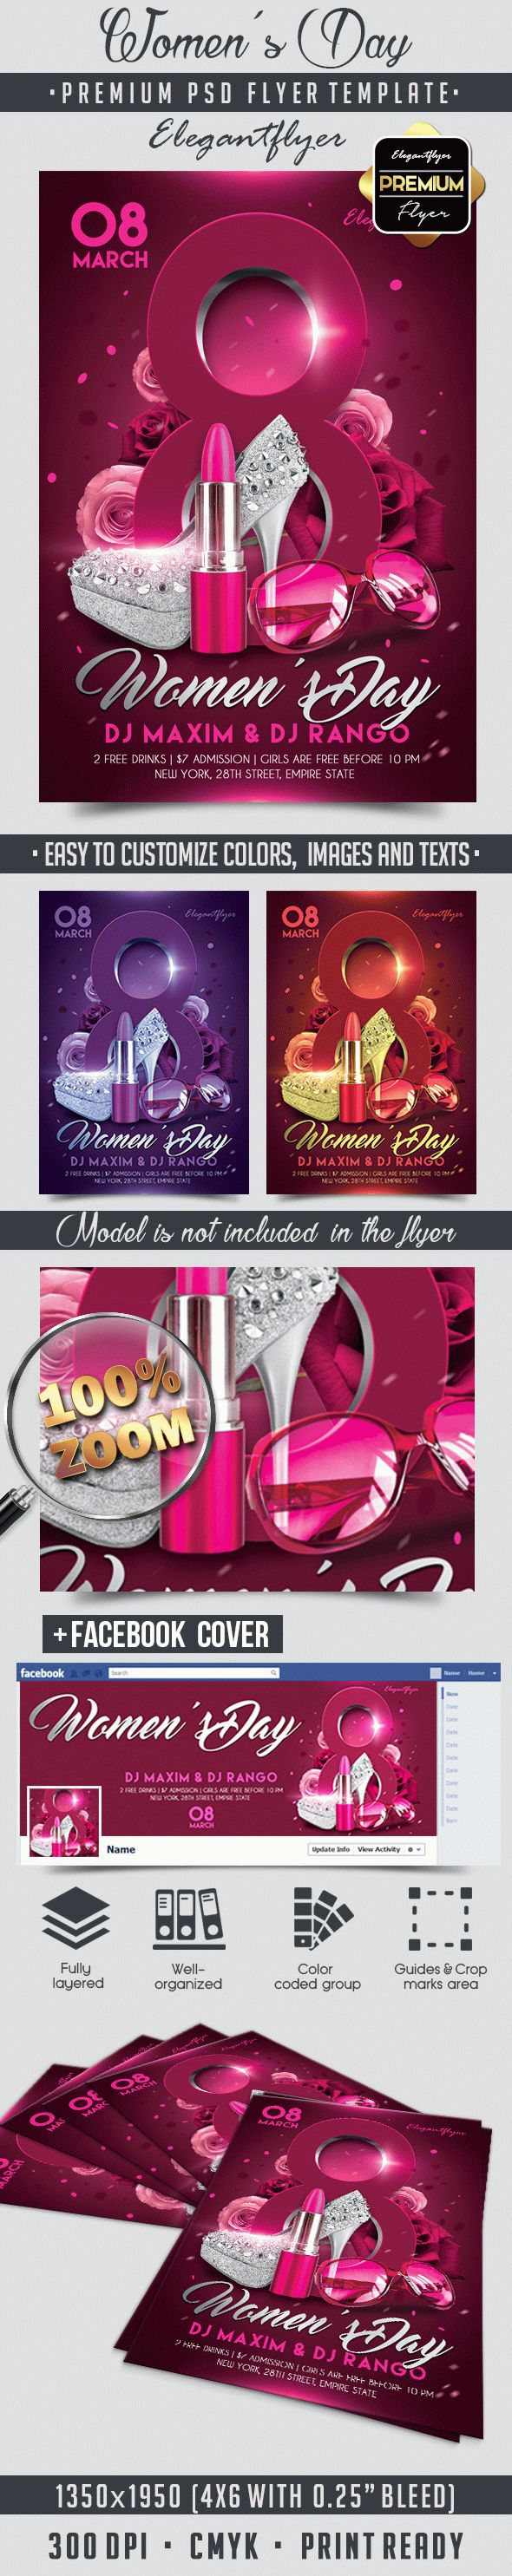 International Women's Day Flyer Template